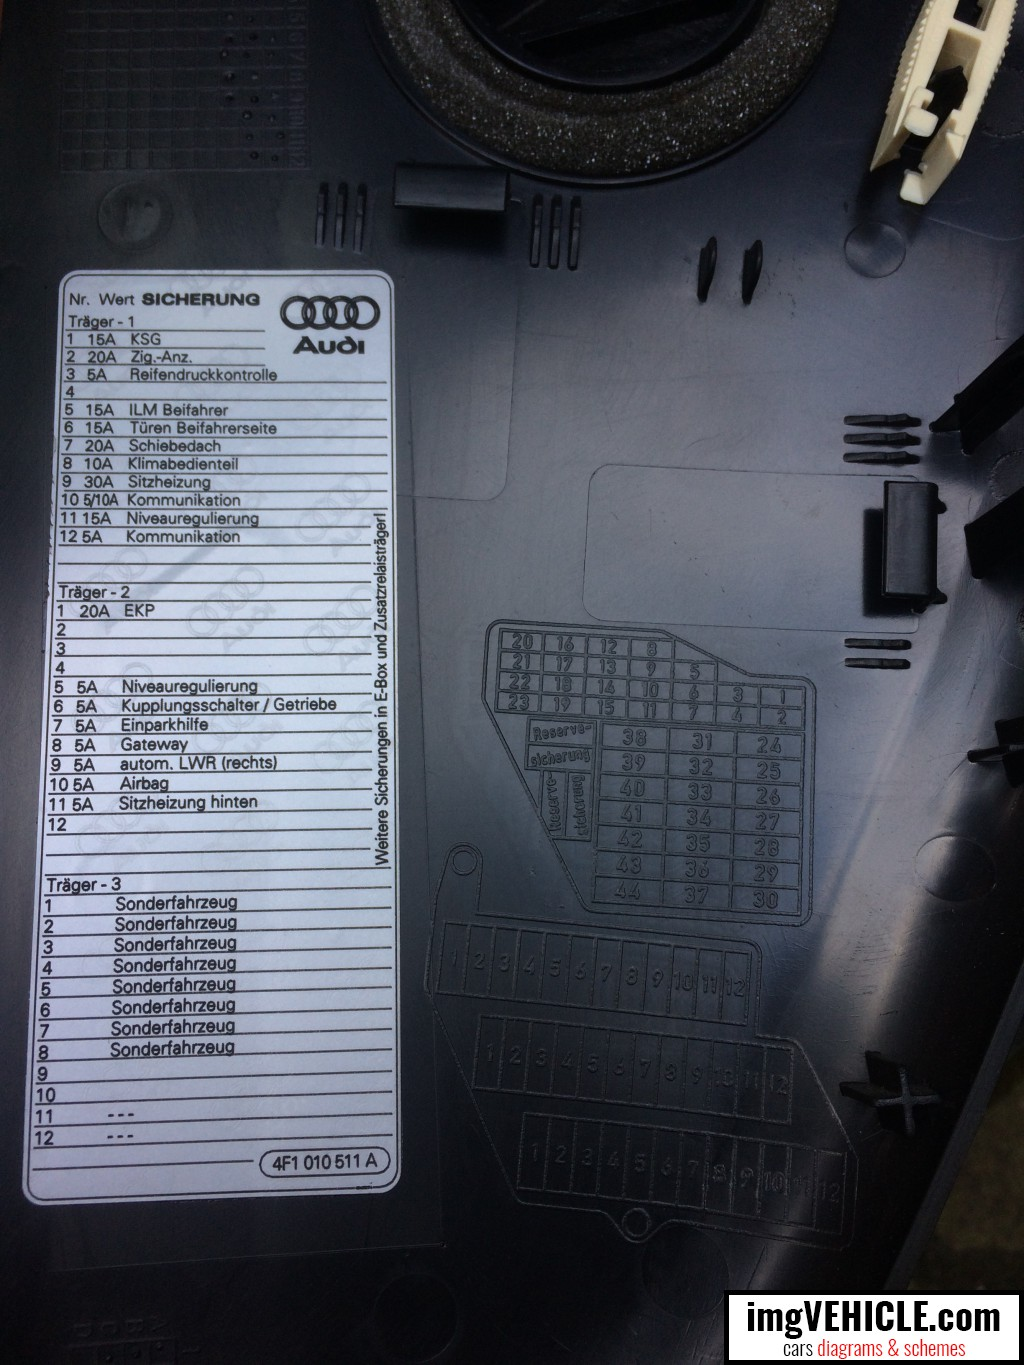 Audi A6 C6 Fuse Box Diagrams Schemes Wiring Diagram For 2004 A4 Quattro Together With Towbar Dash Panel 2